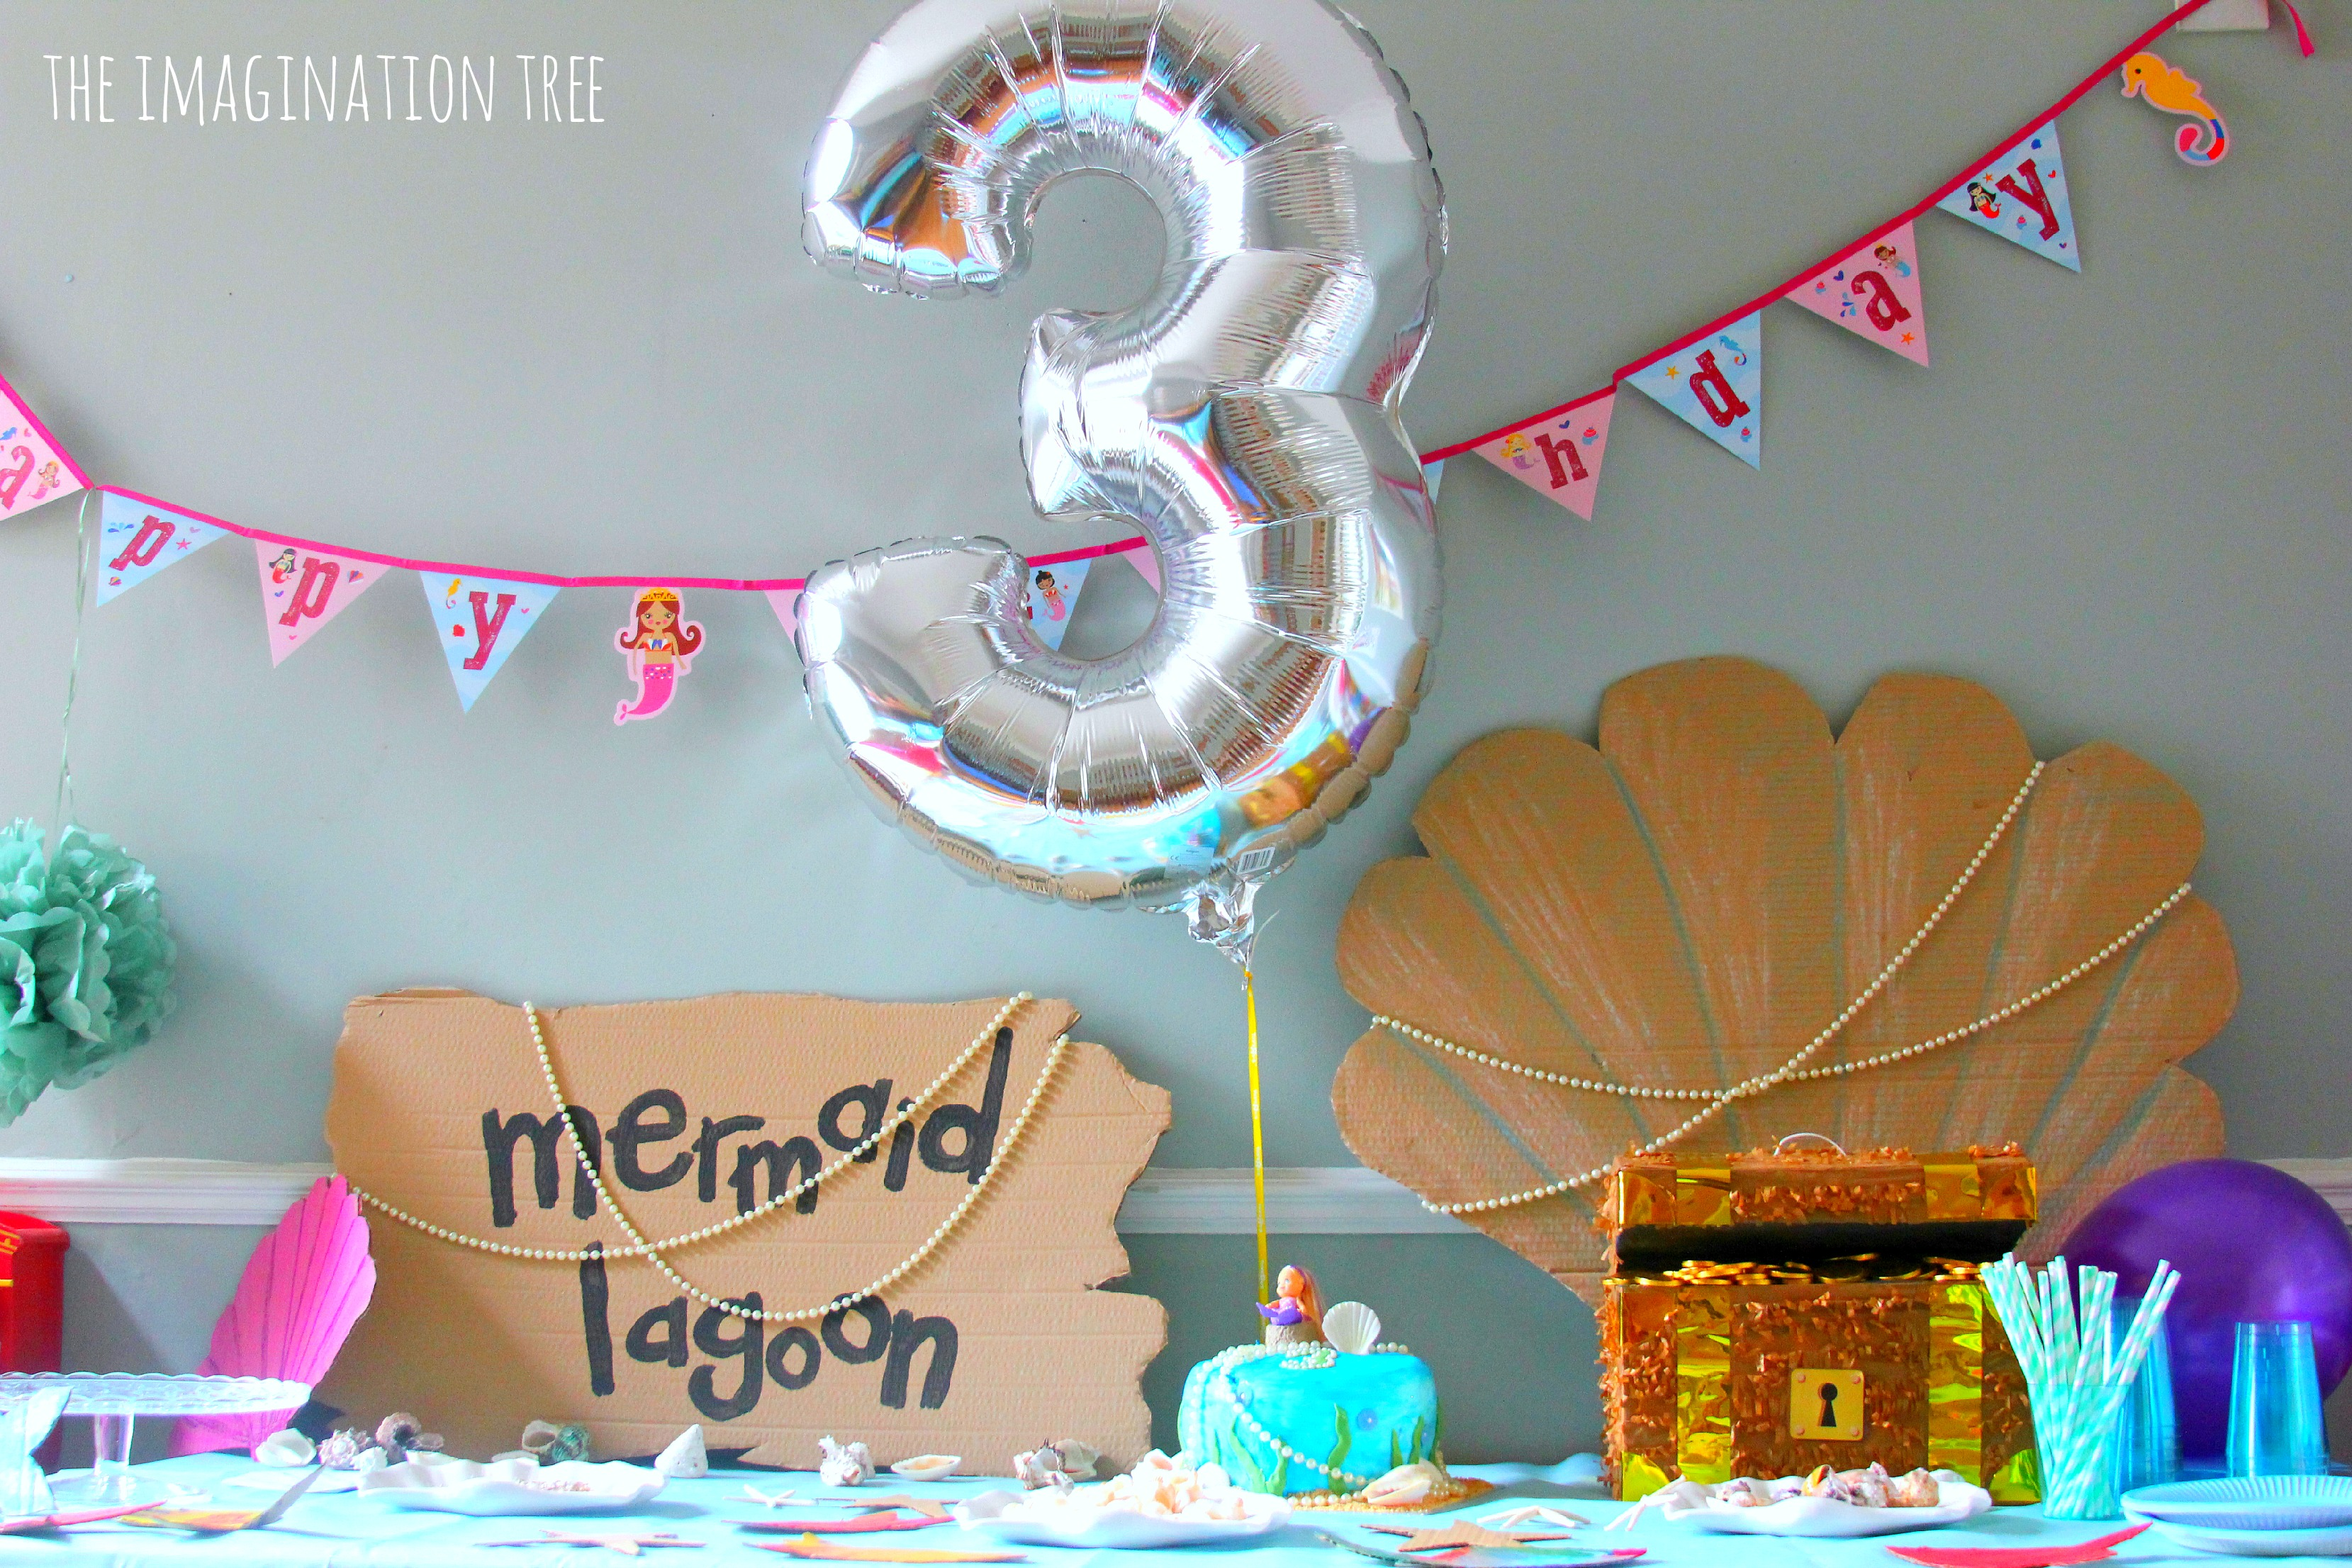 Mermaid Birthday Party Ideas - The Imagination Tree